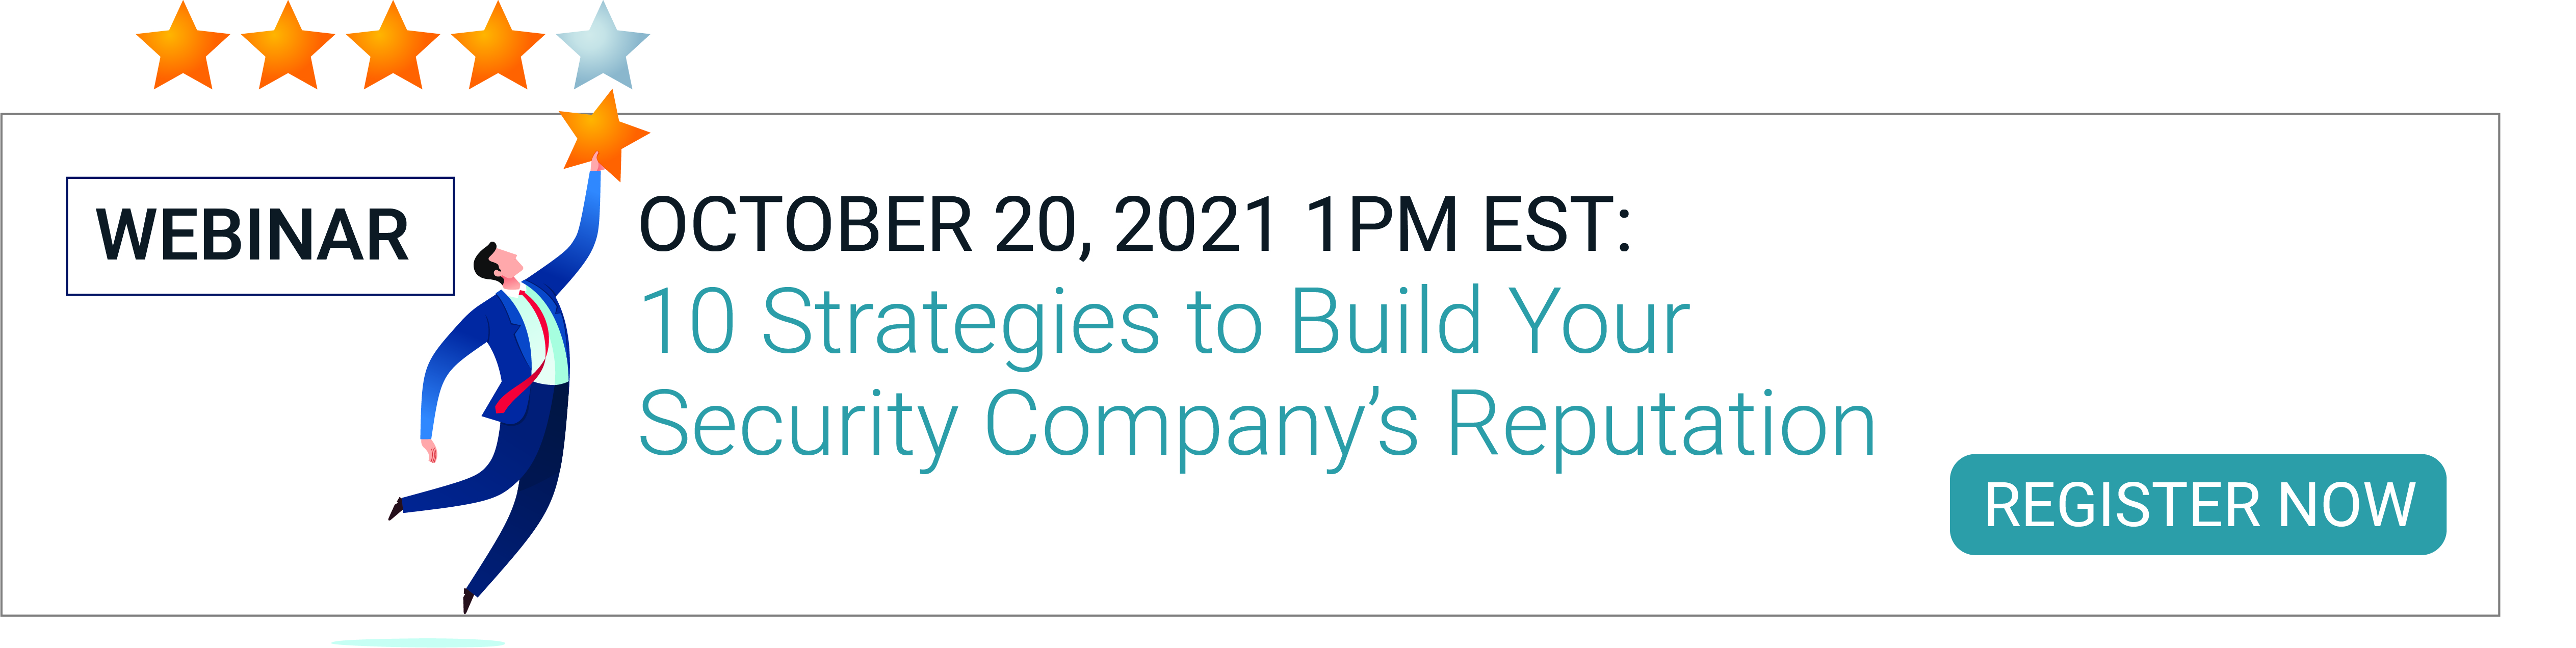 10 Strategies to Build Your Security Company's Reputation - Register Now